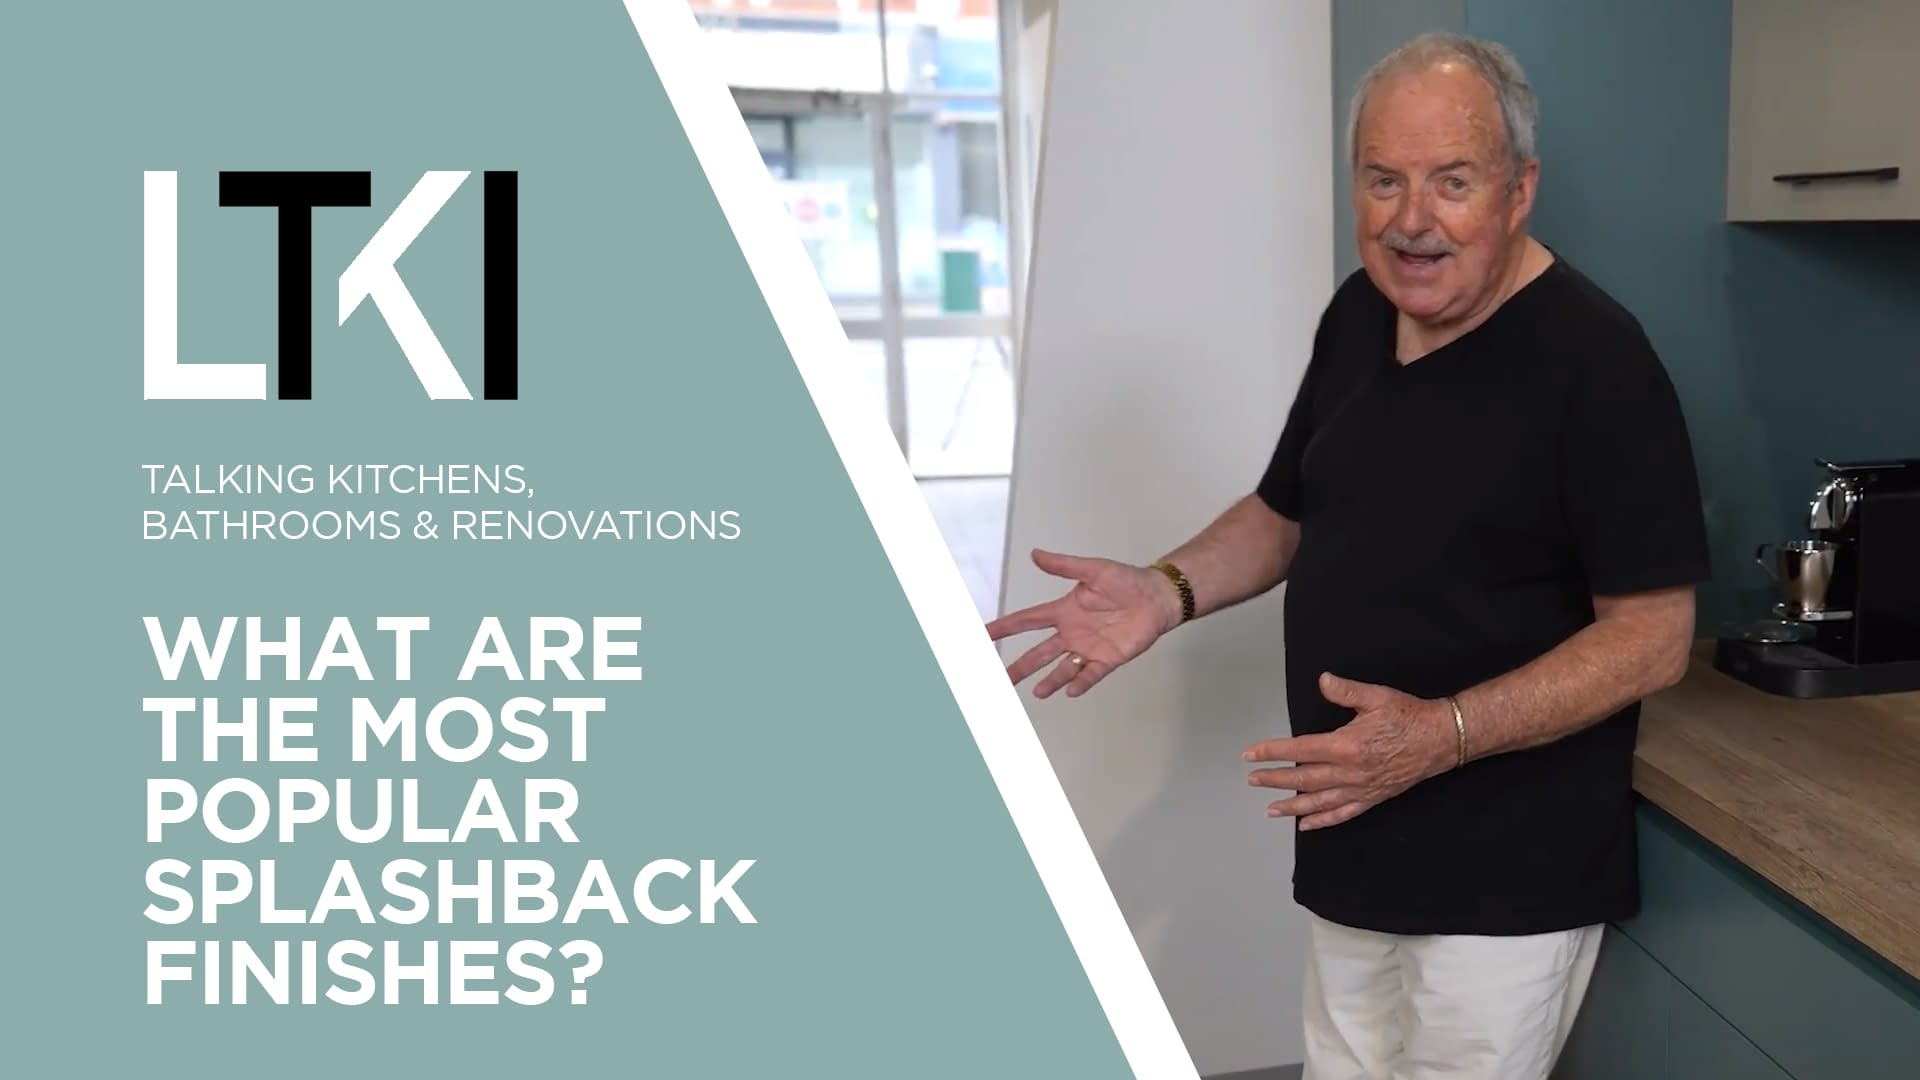 Talking Kitchens, Bathrooms & Renovations: What Are The Most Popular Splashback Finishes?